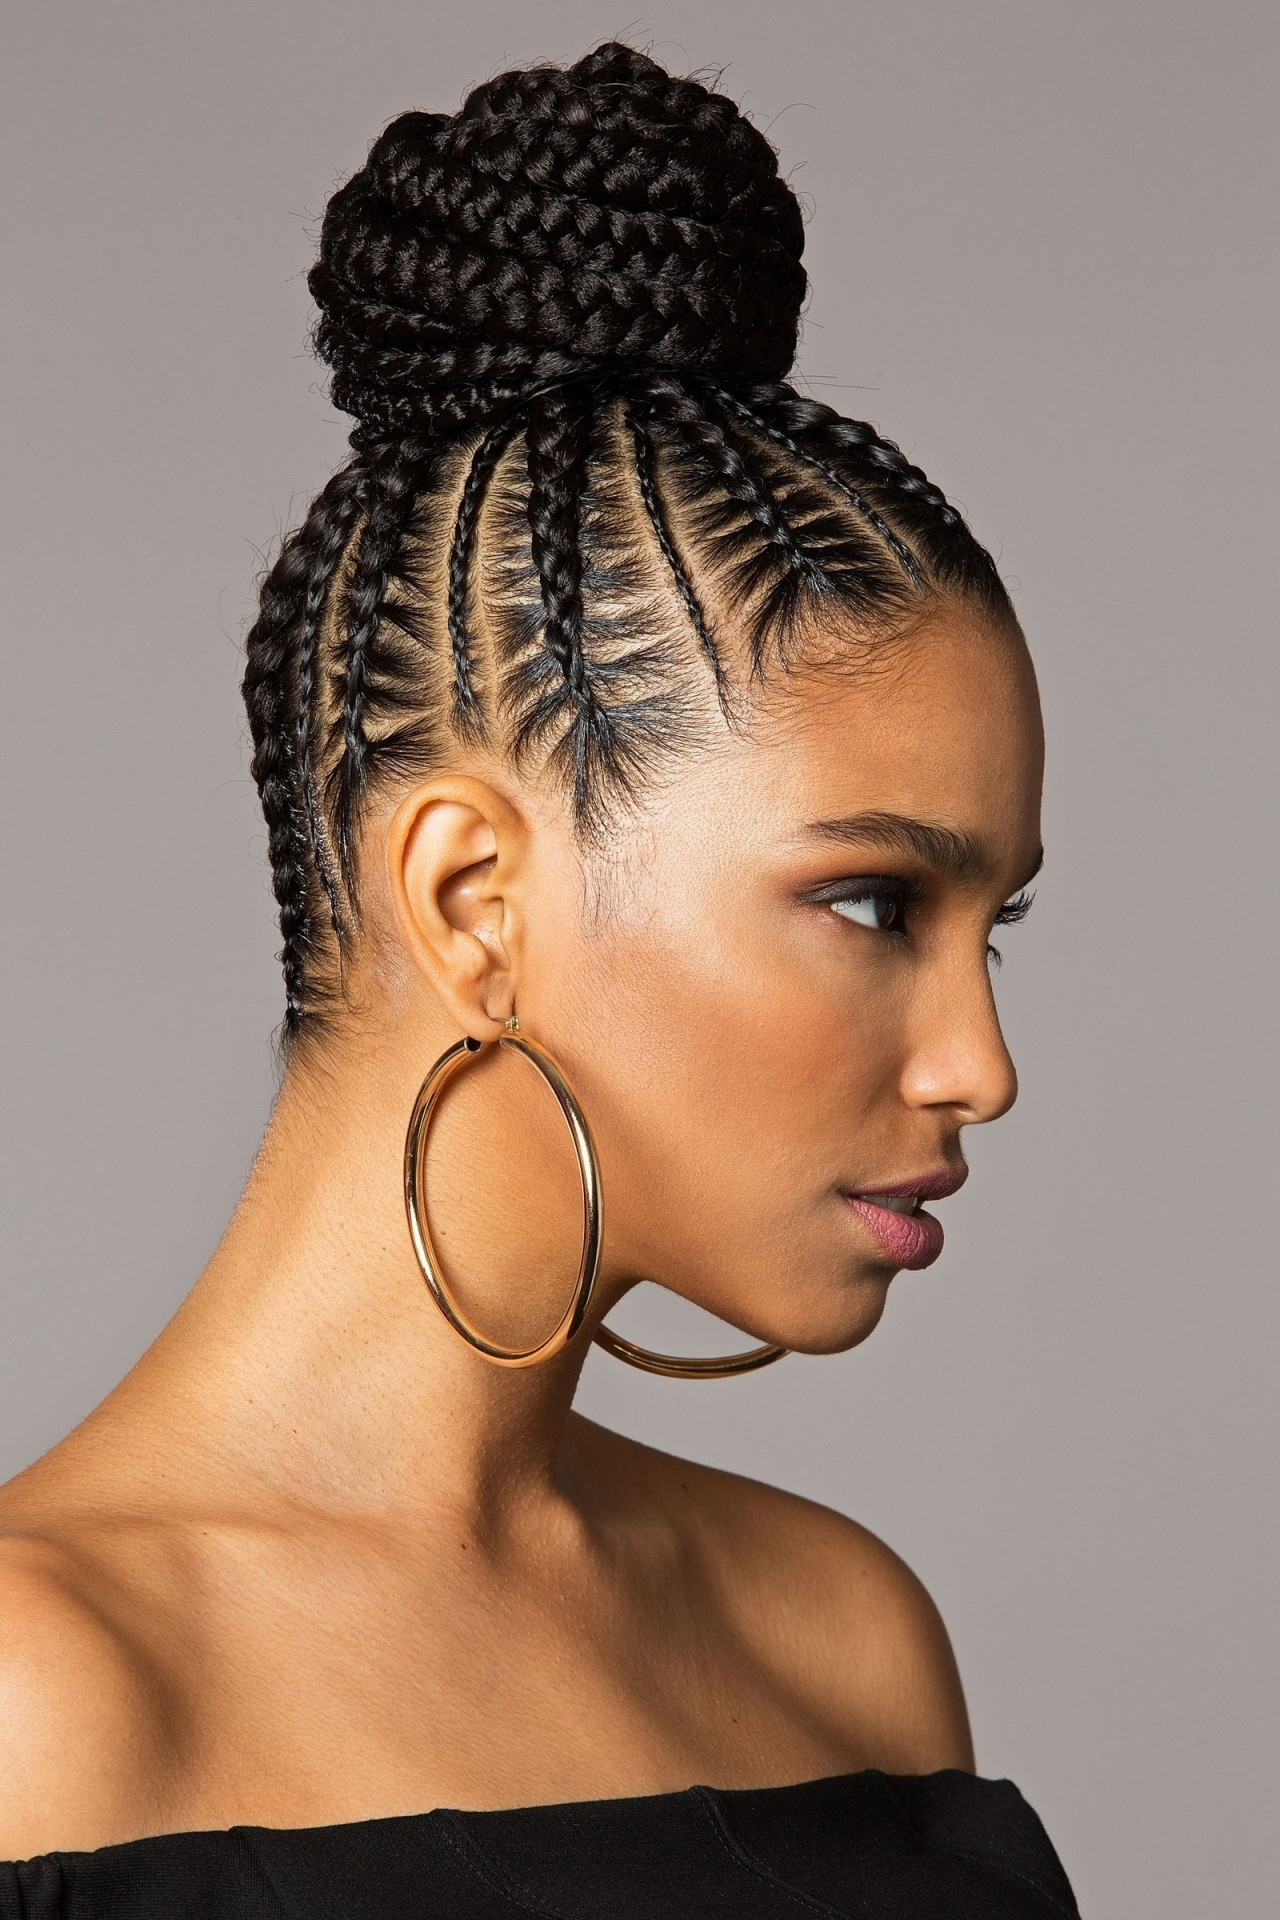 2019 Latest Braided Updo Hairstyles With Weave